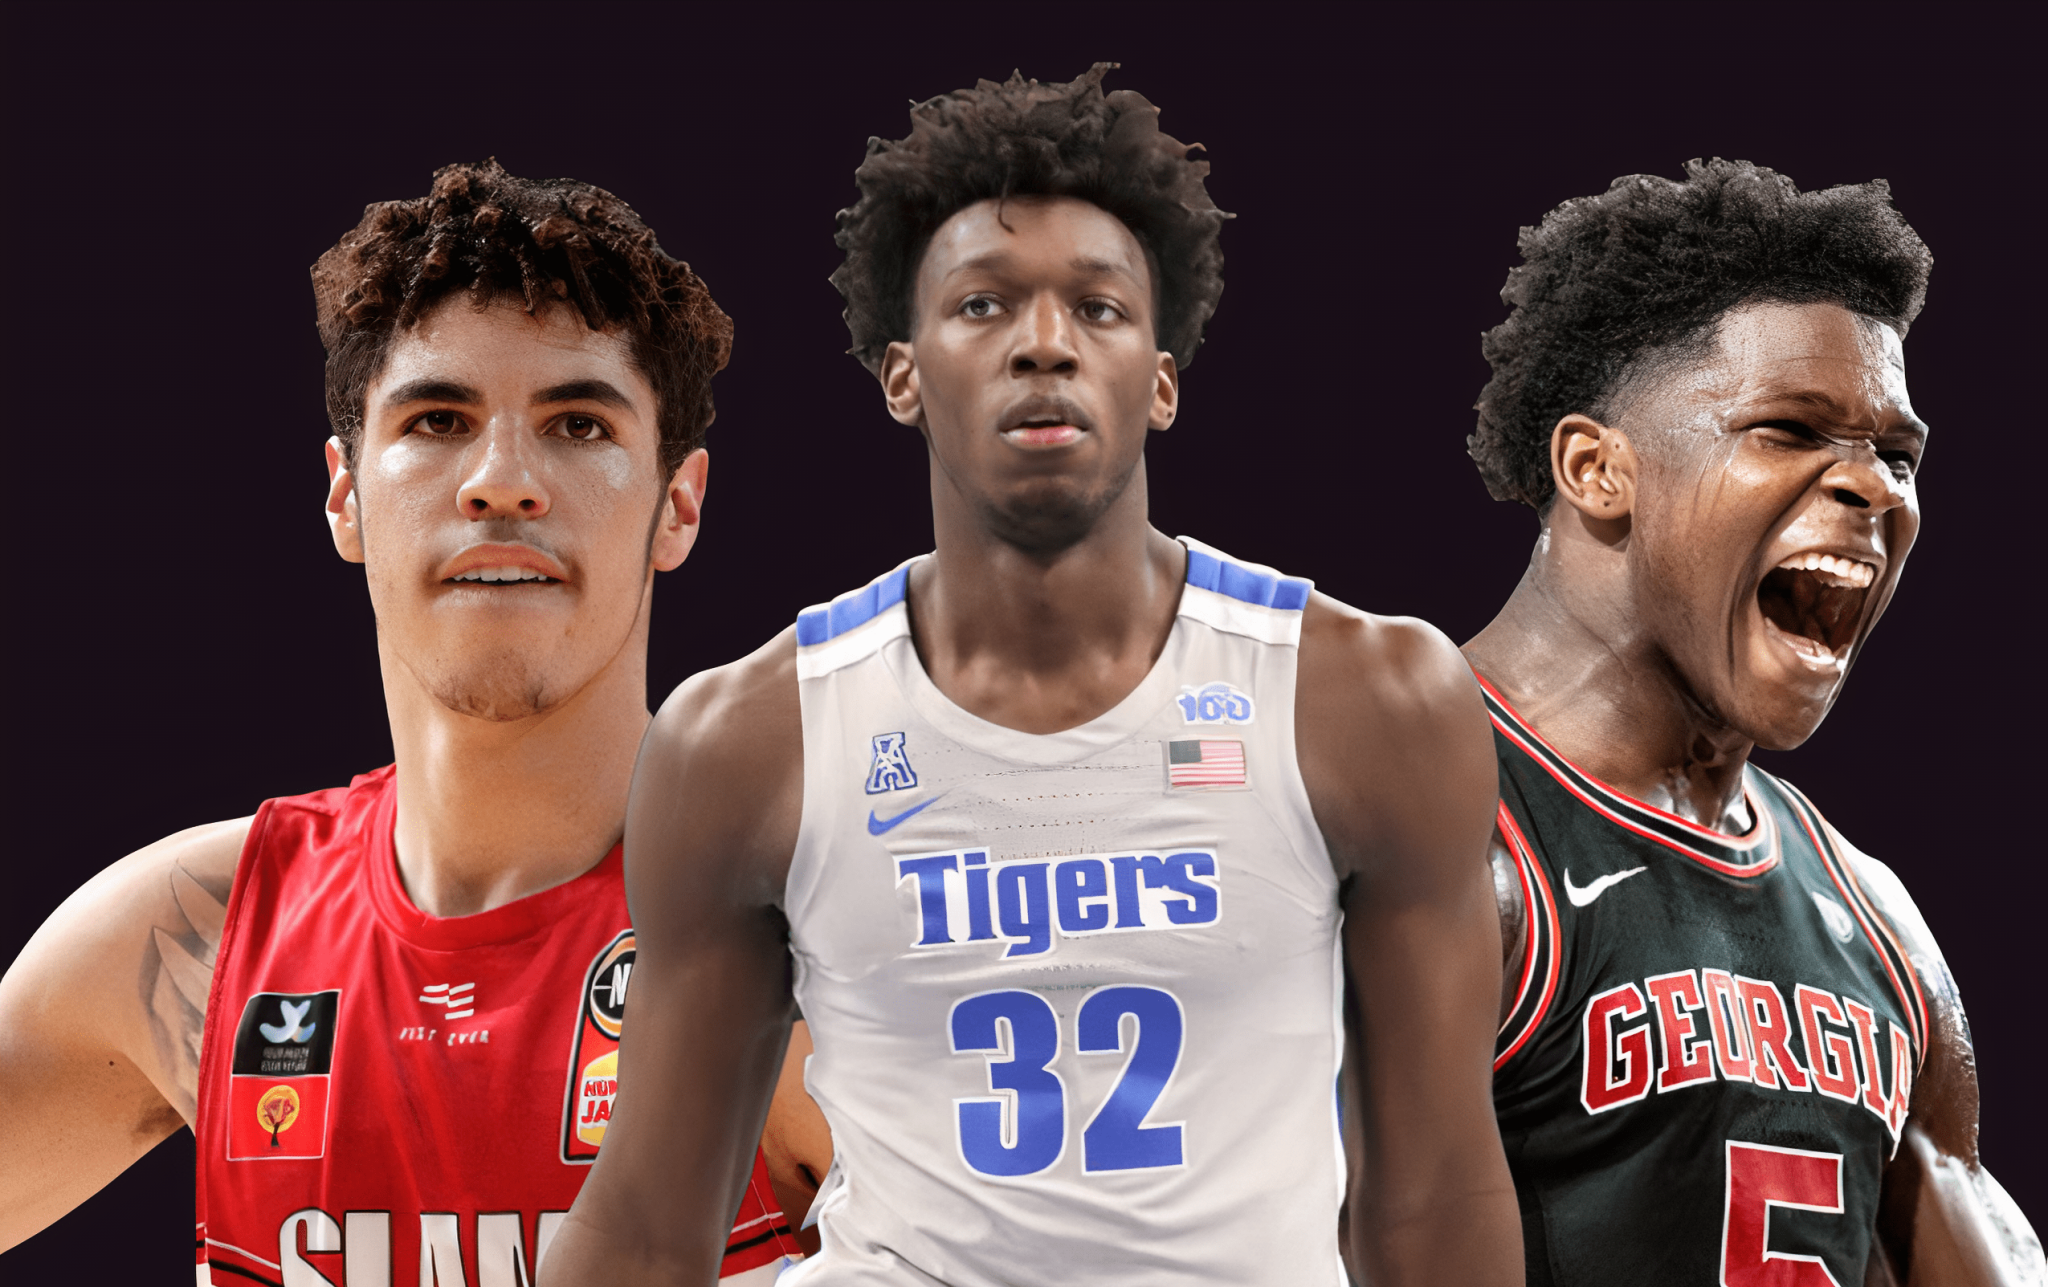 LaMelo Ball, James Wiseman, and Anthony Edwards are expected to go at the top of the 2020 Draft. Everything you need to know…